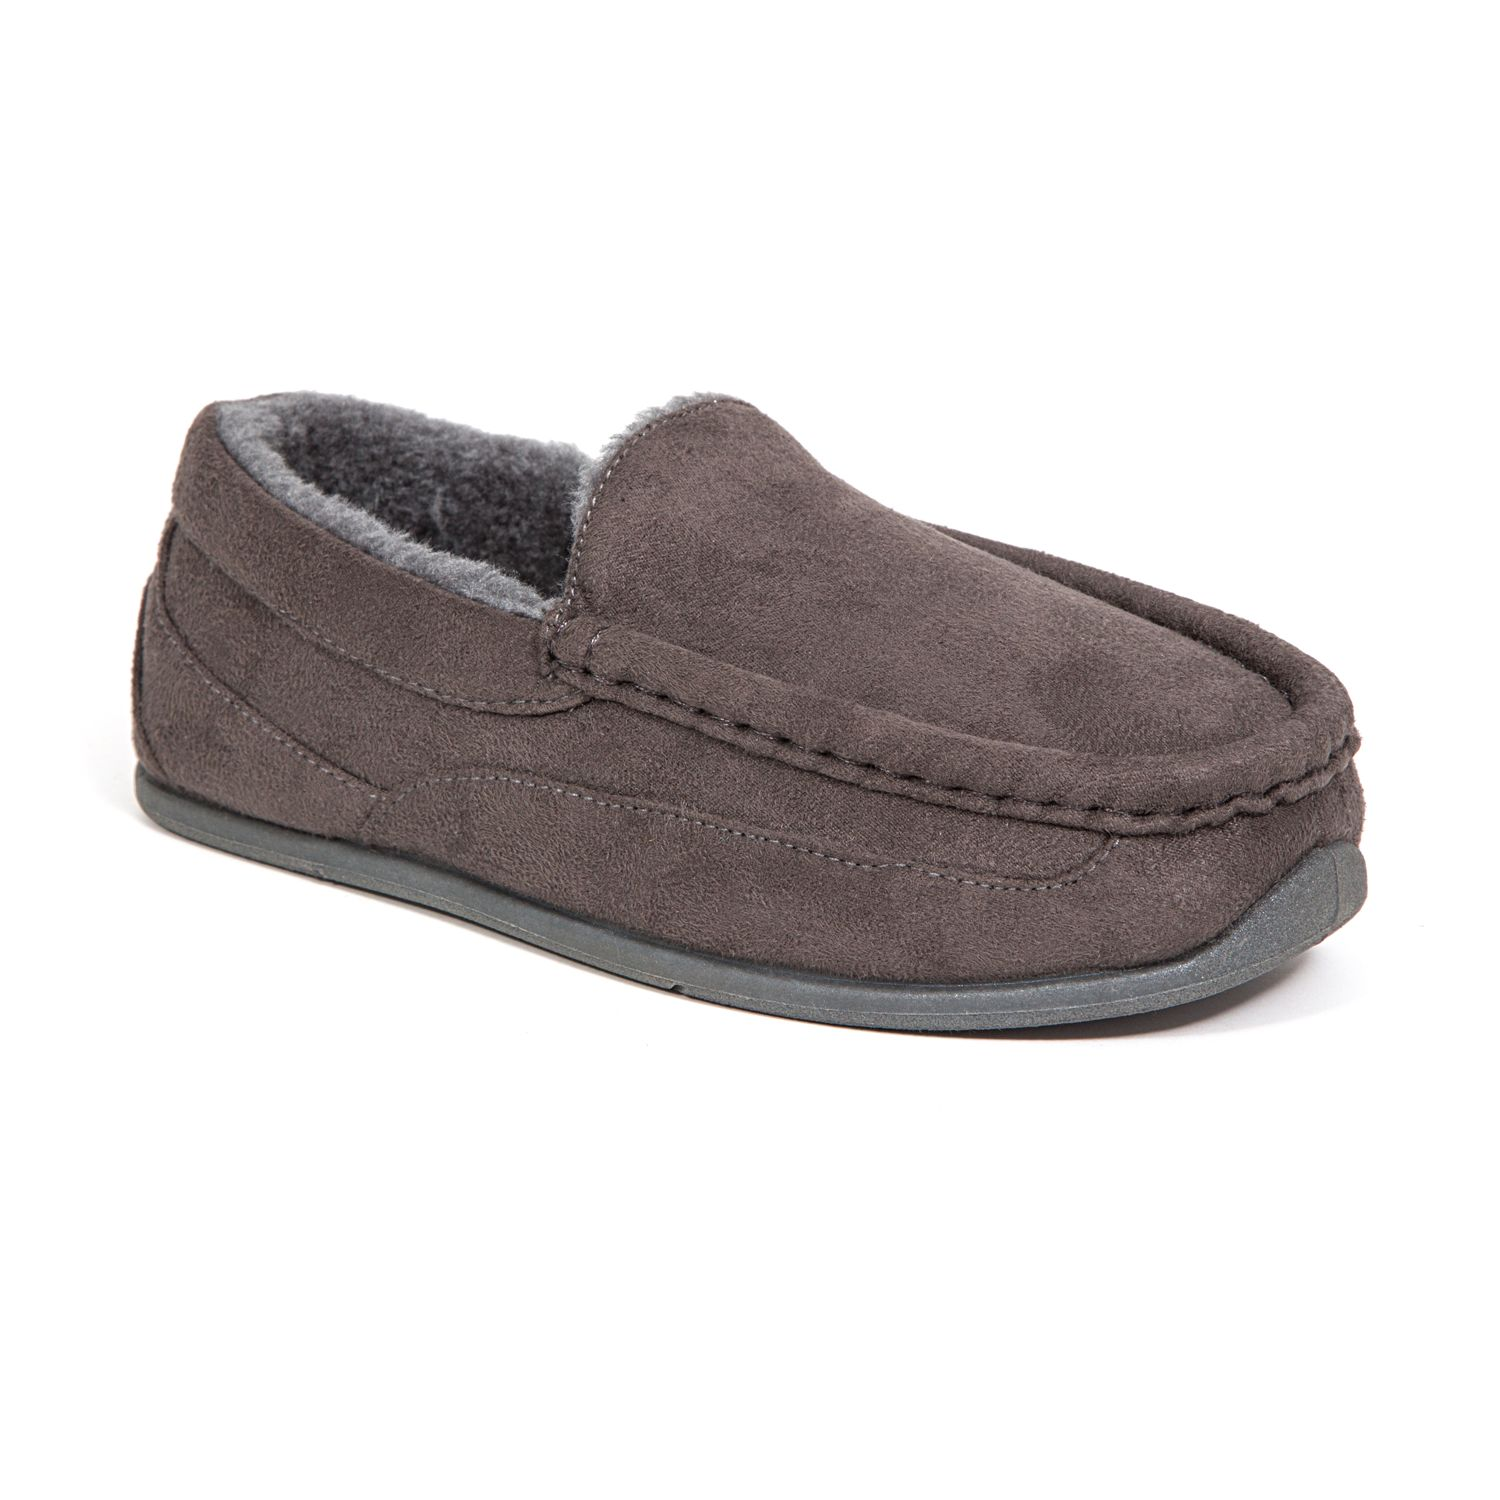 Boys' Slippers: He'll Step into Comfort